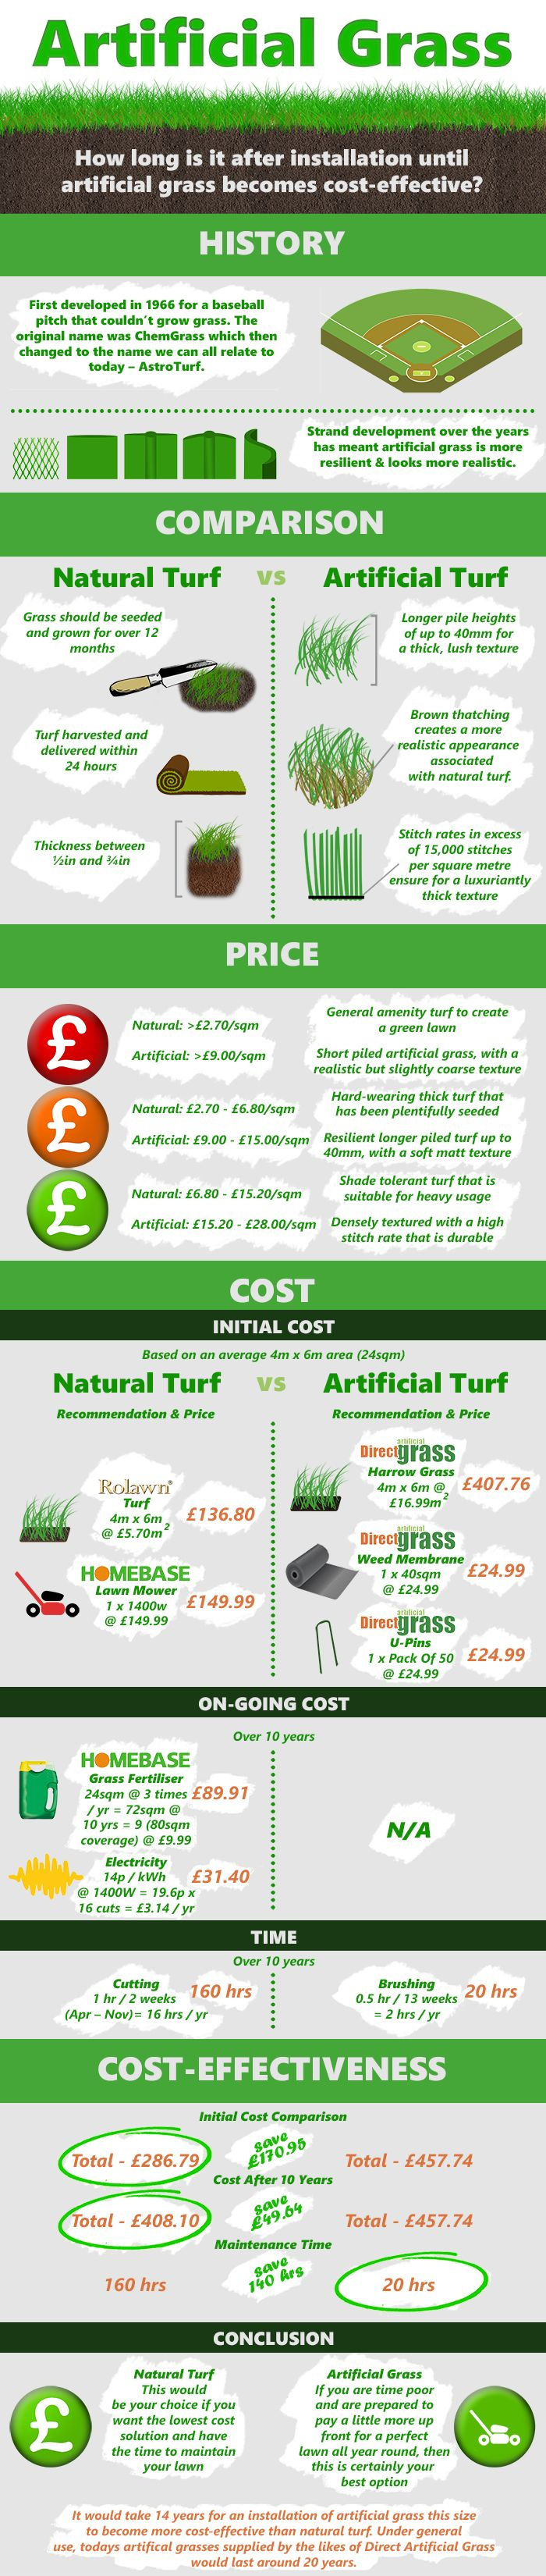 Infographic Explaining How Cost Effective Is Artificial Grass Compared To Natural Turf When Installing.